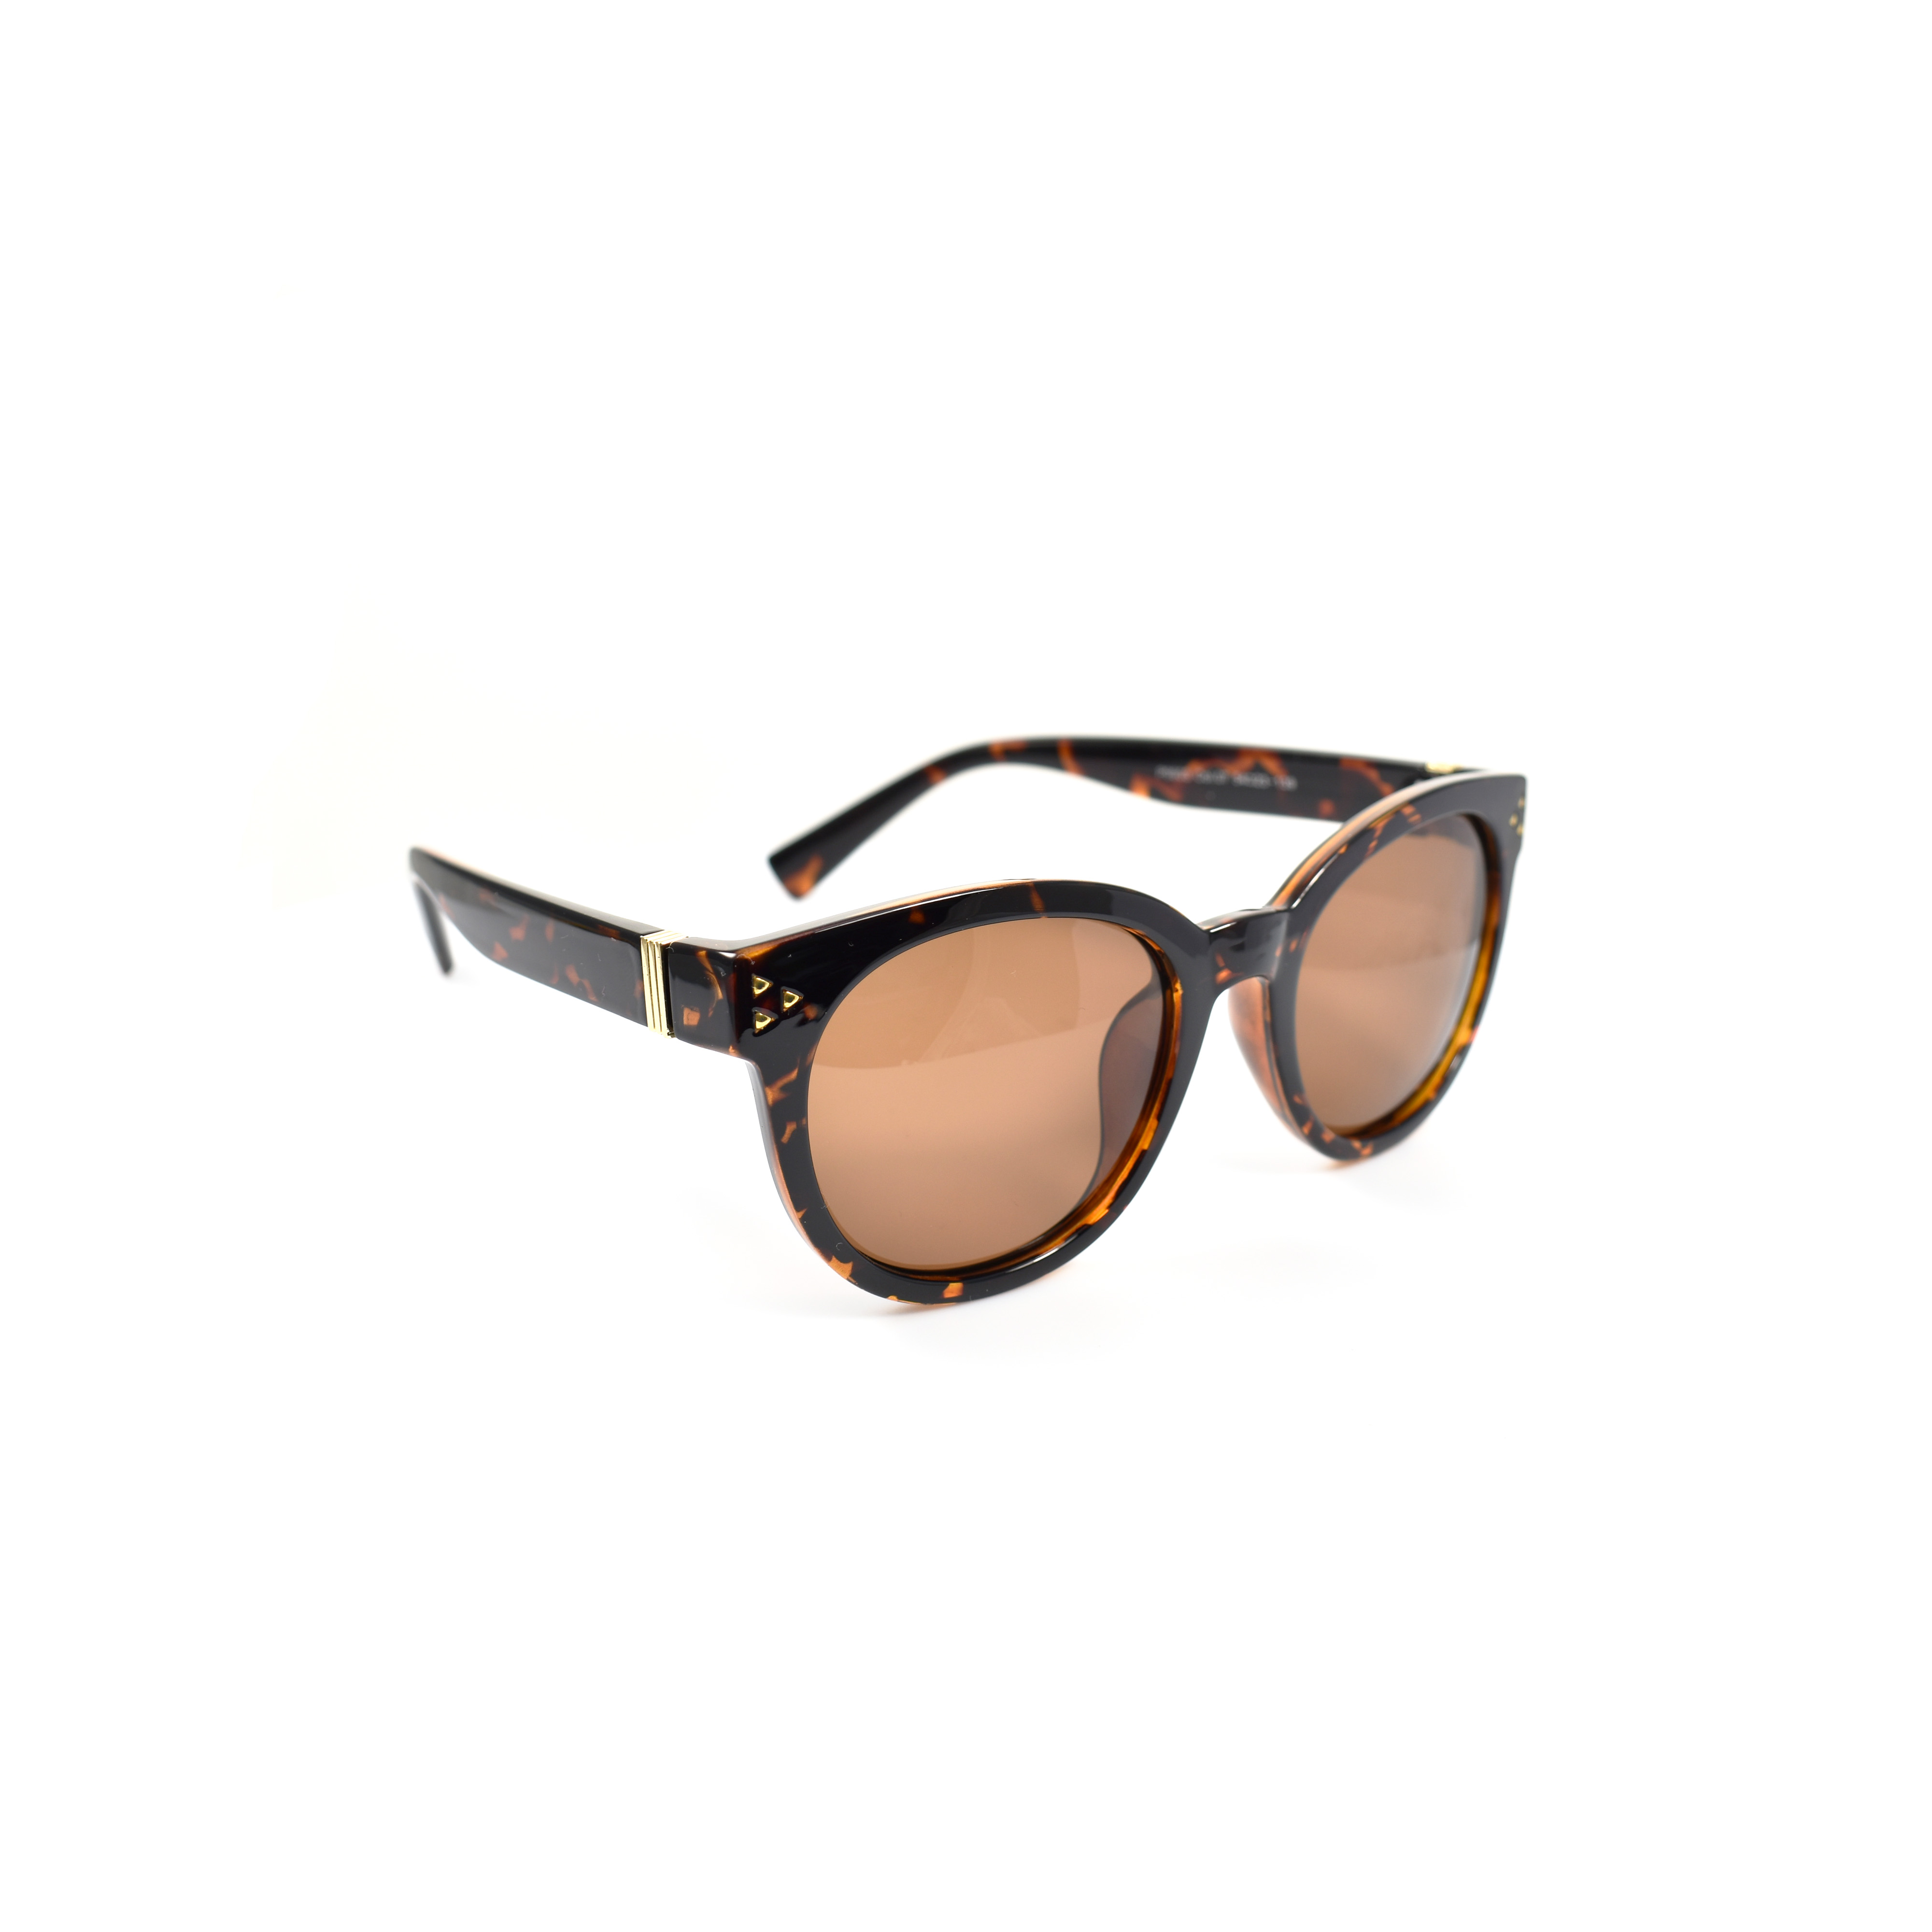 Hakidonmuya Brown Tortoise Polarized Cateye